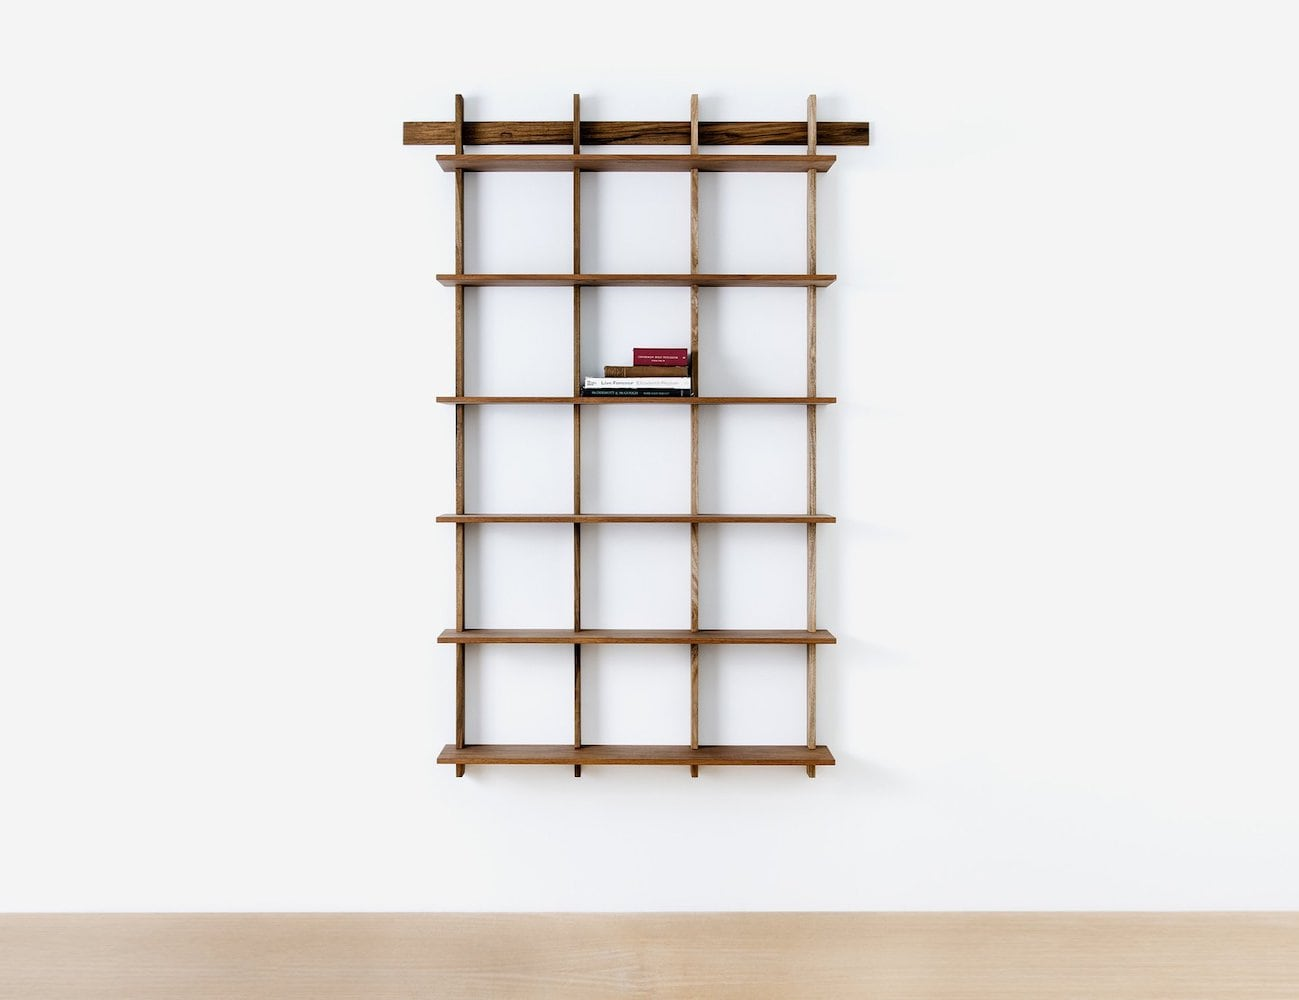 Kit A Sticotti Modular Interlocking Shelves customize for your space